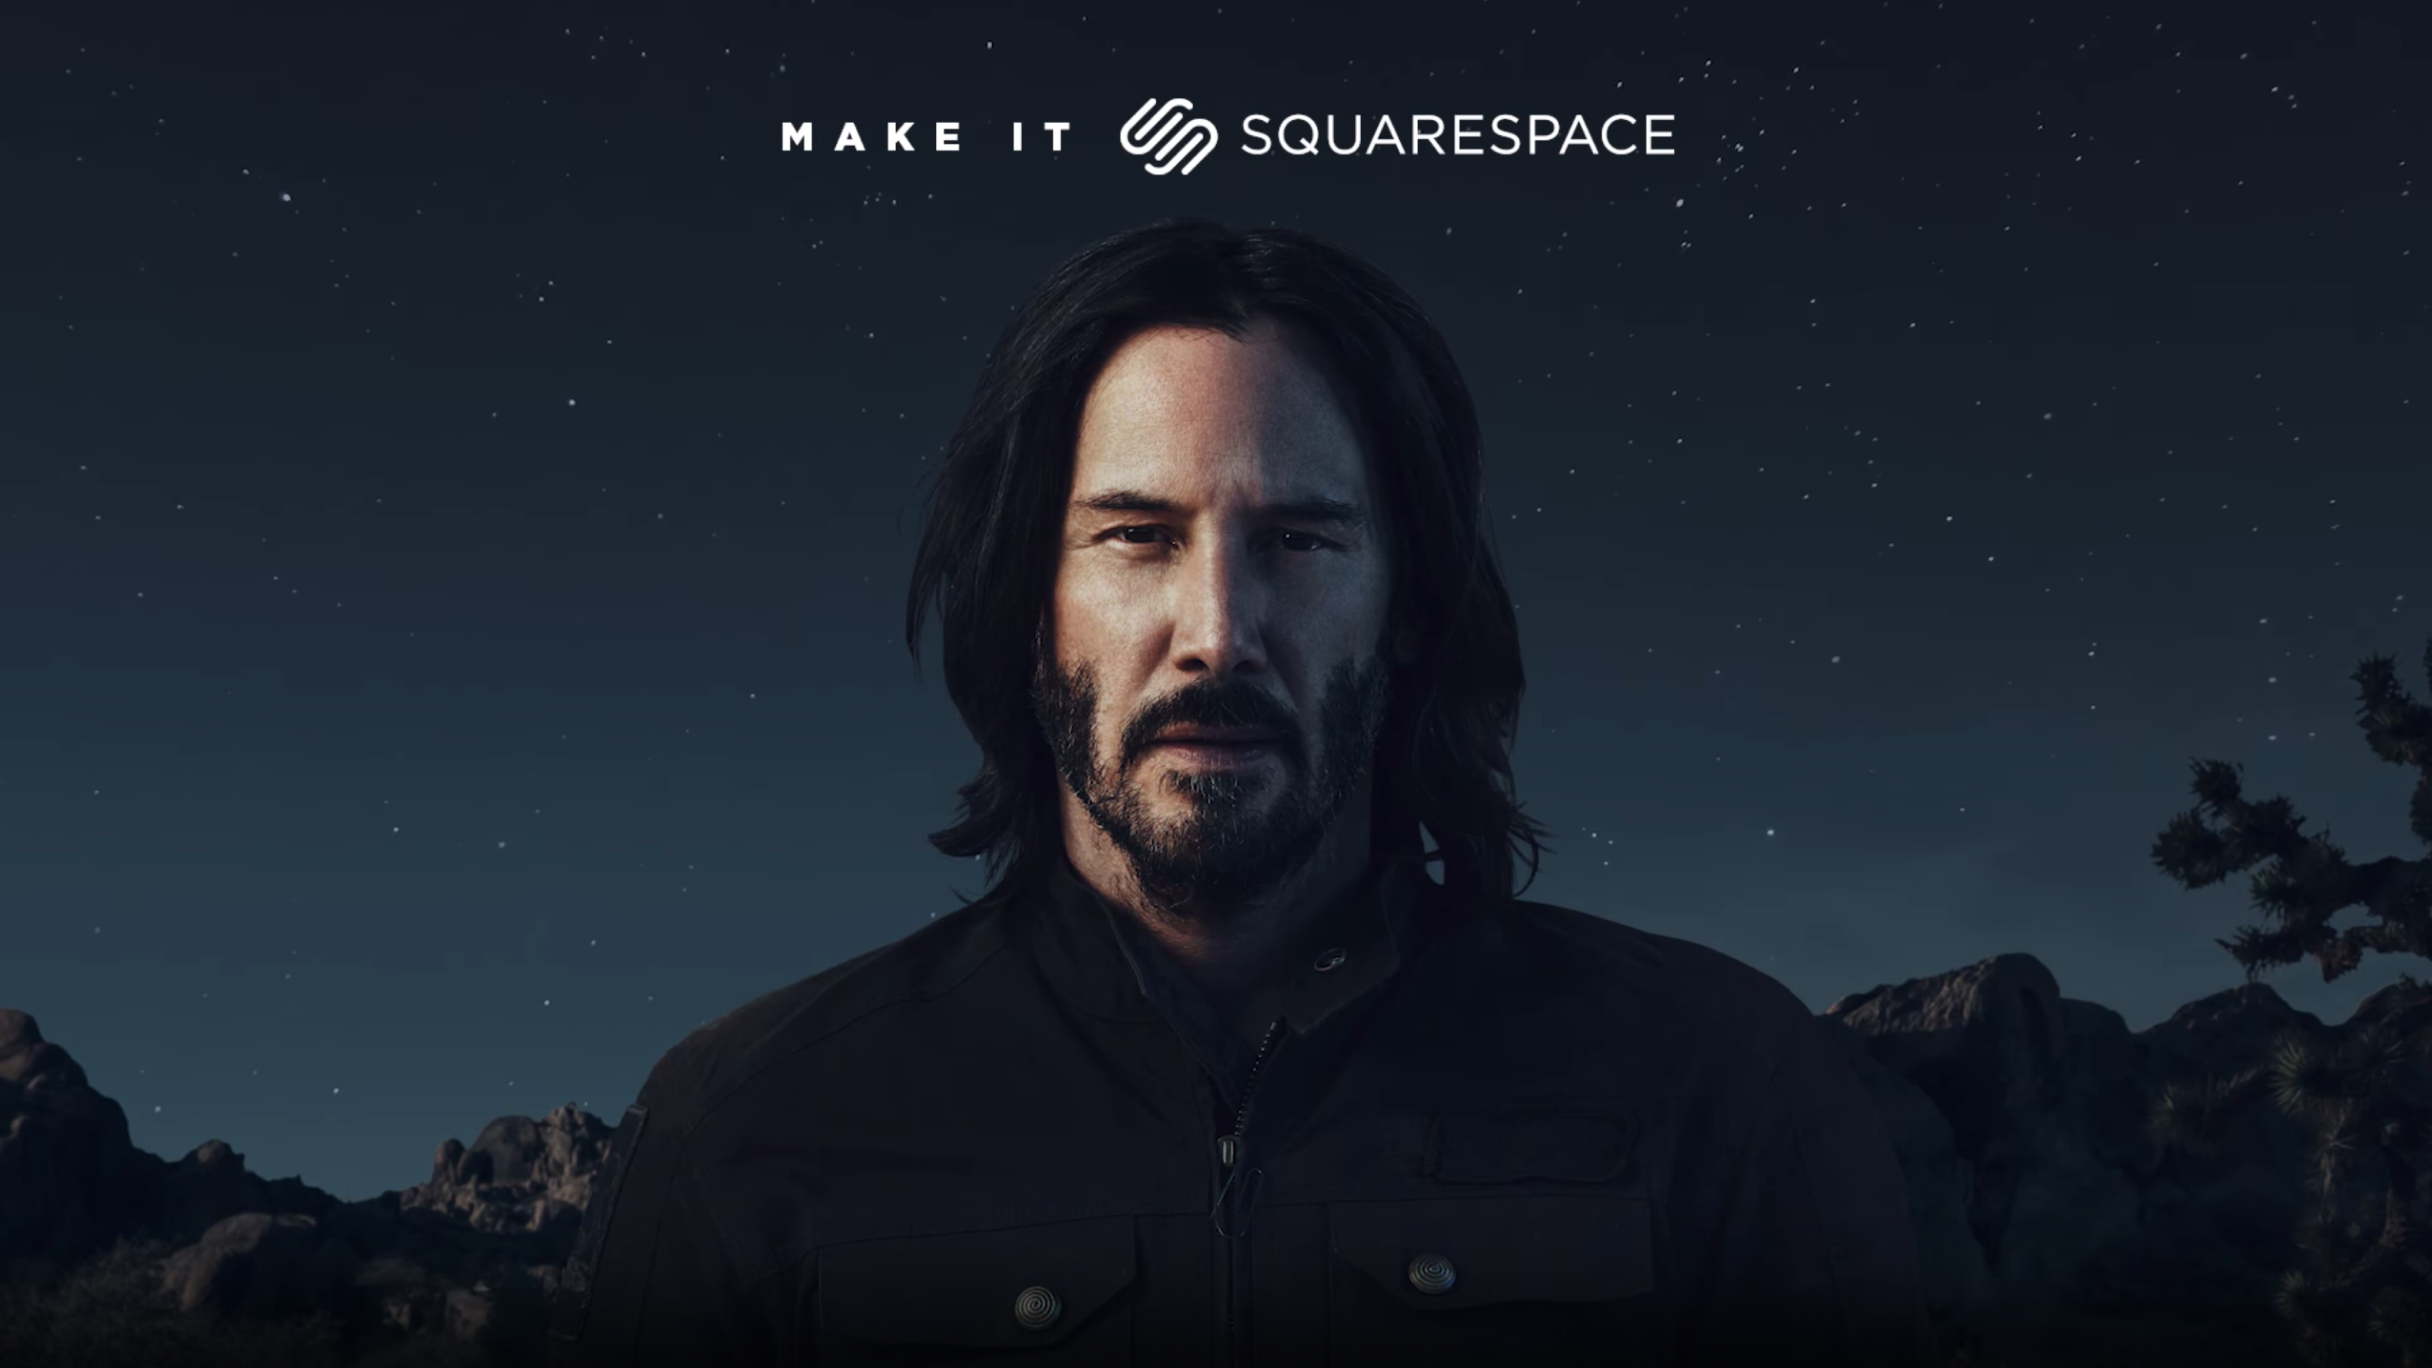 Keanu Reeves stands in front of a Joshua Tree at night during a Squarespace commercial.